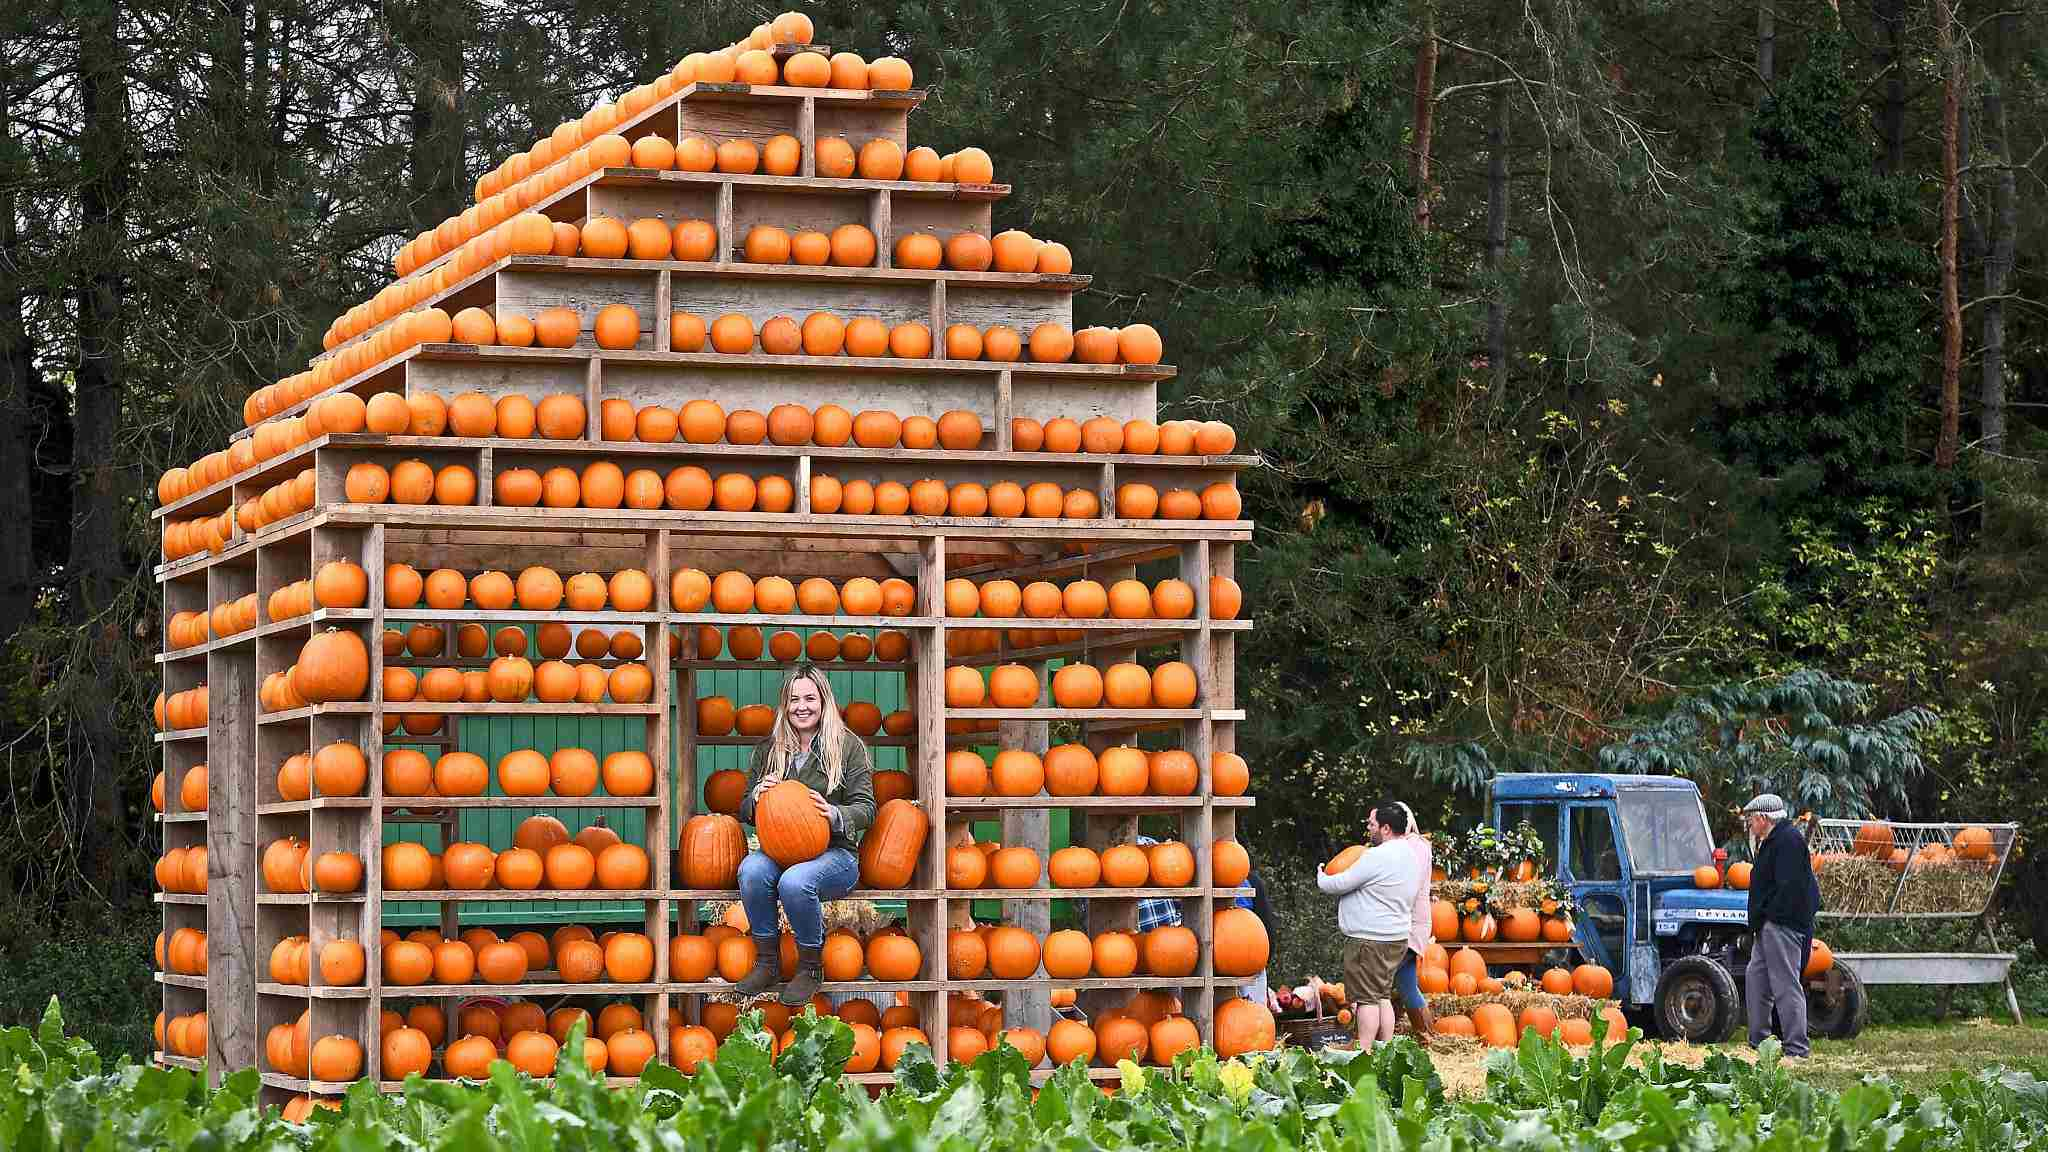 Choose your pumpkin at this pumpkin house